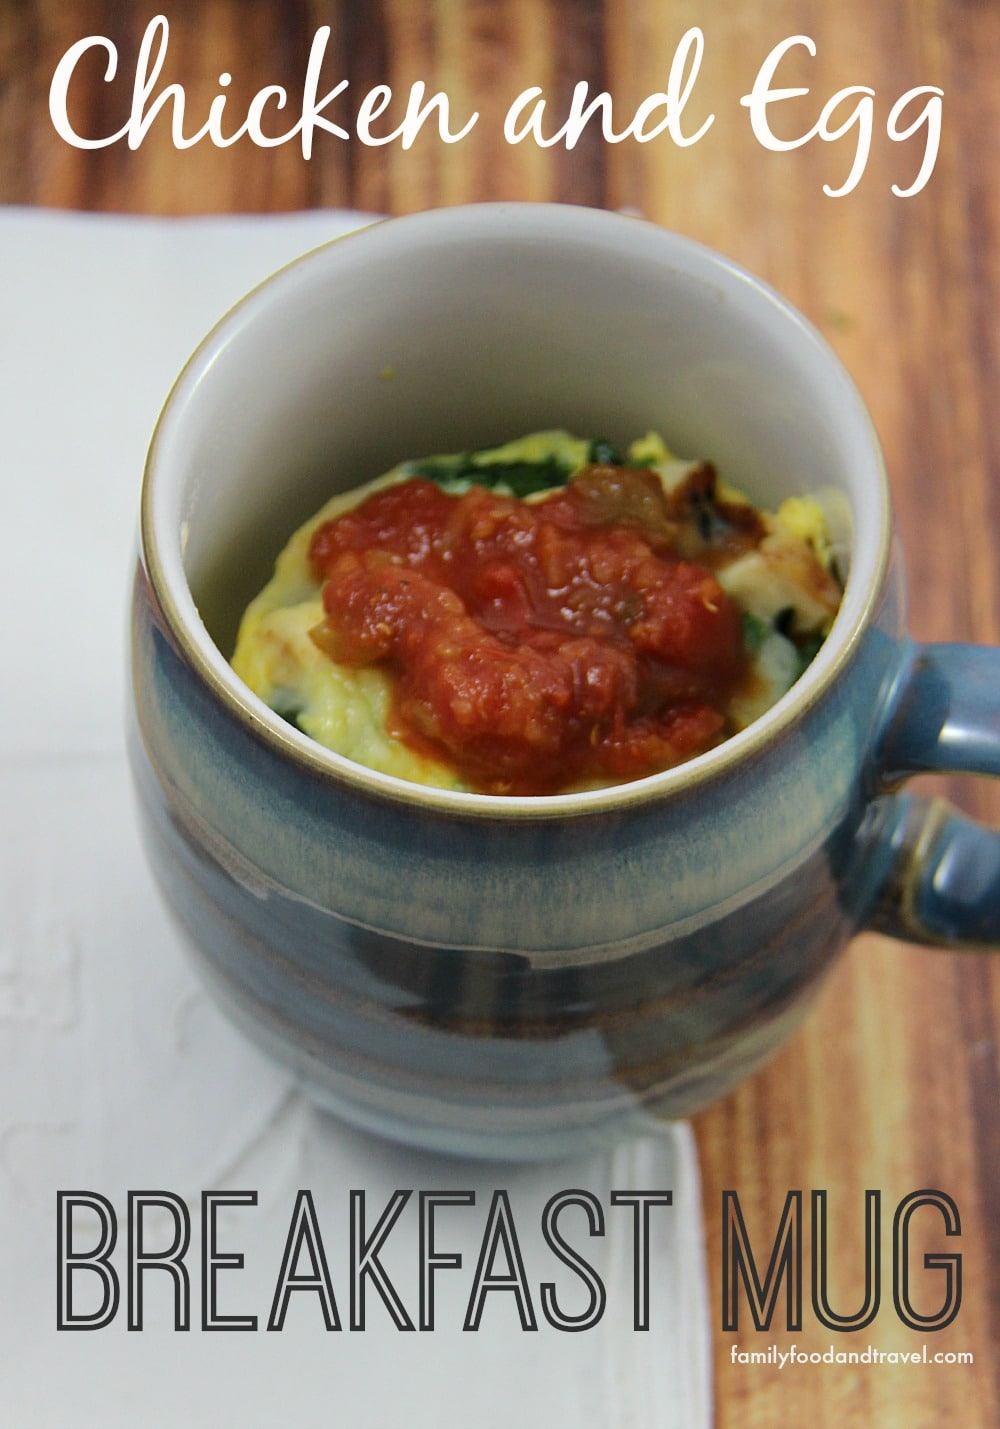 Chicken and Egg Breakfast Mug with salsa